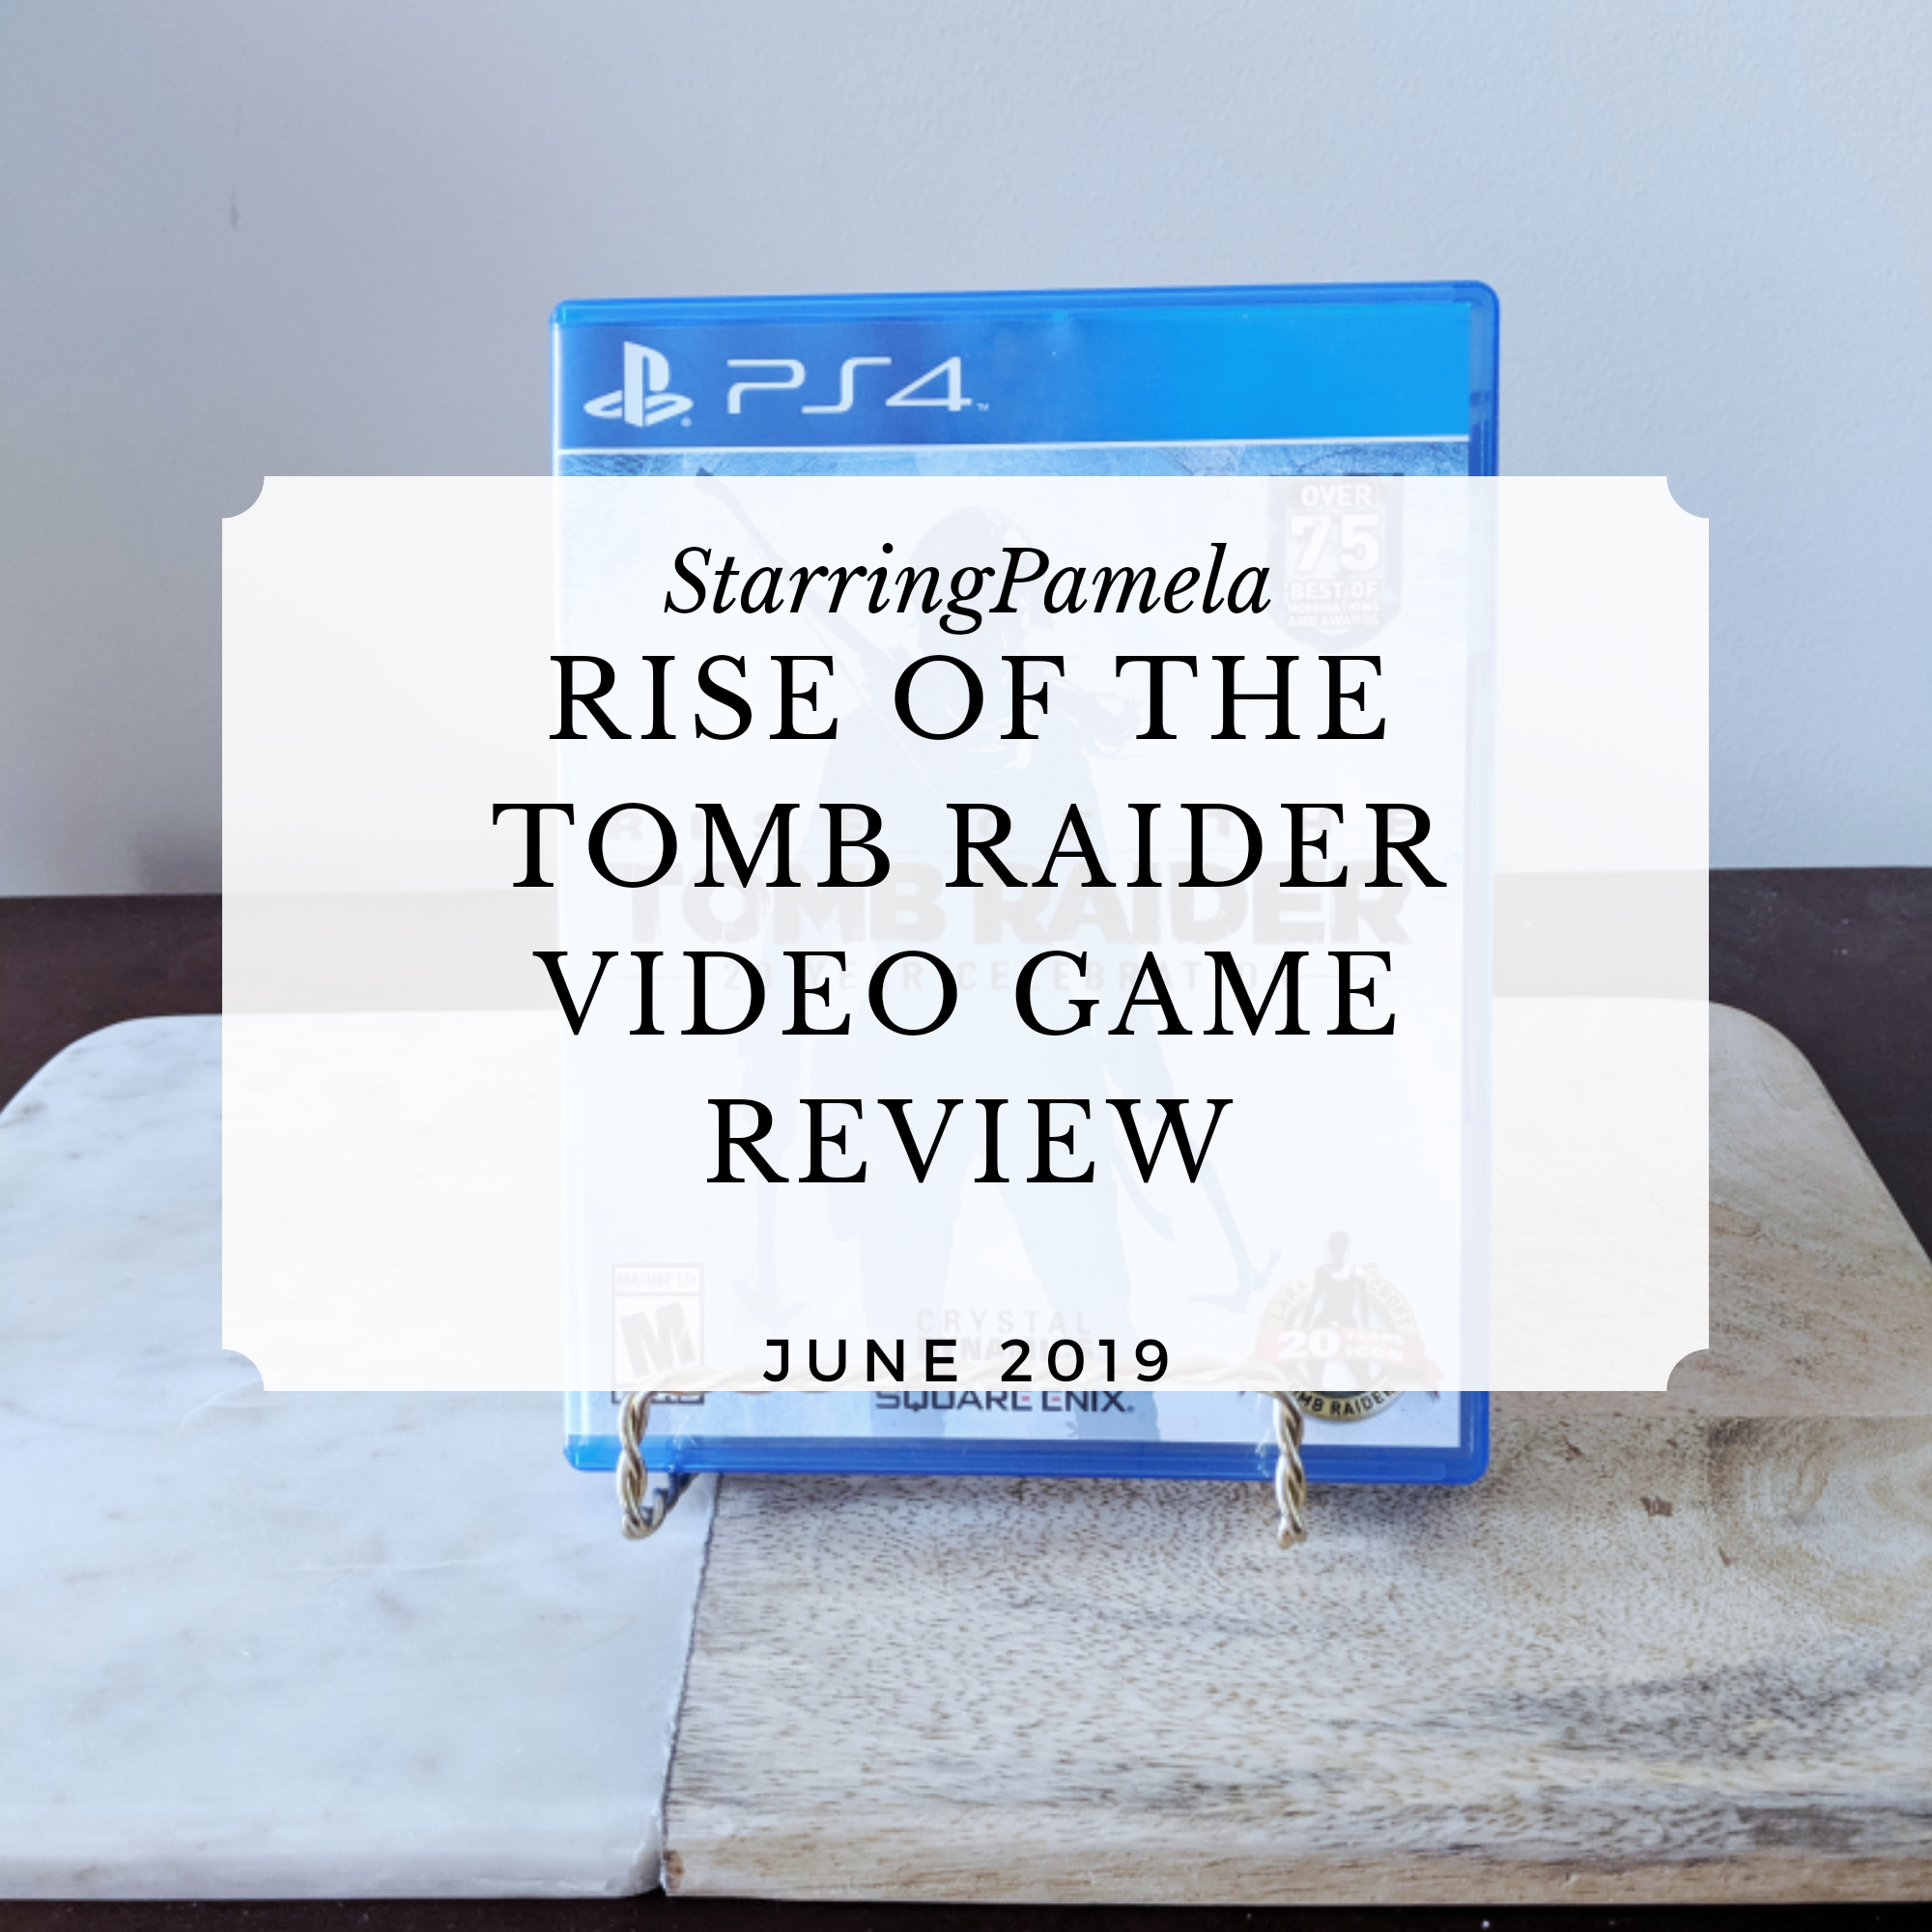 rise of the tomb raider video game review featured image